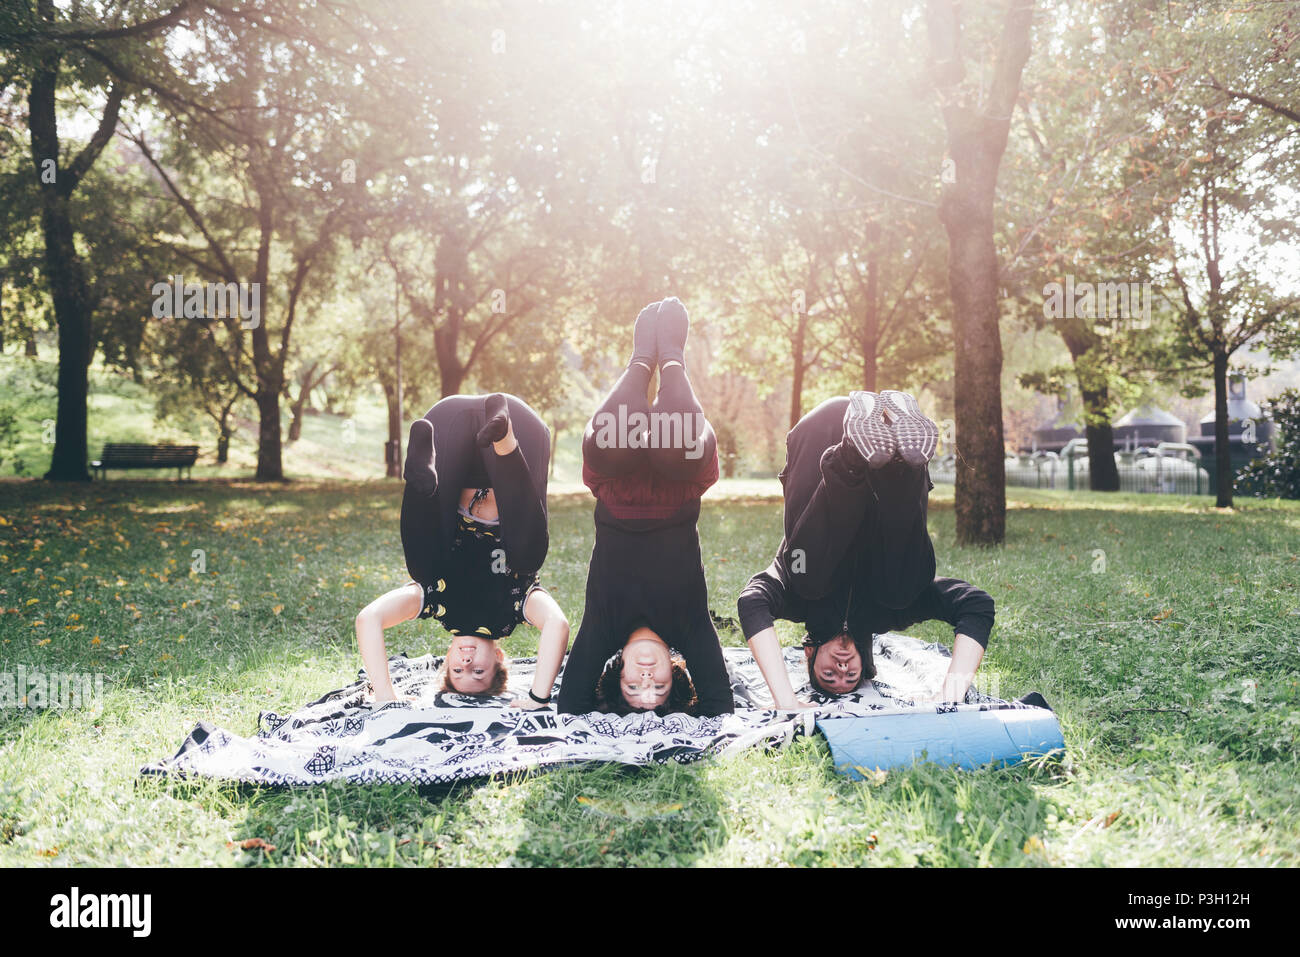 Young man and women stretching outdoor in a city park in sunny day - sportive, training, wellness concept - Stock Image